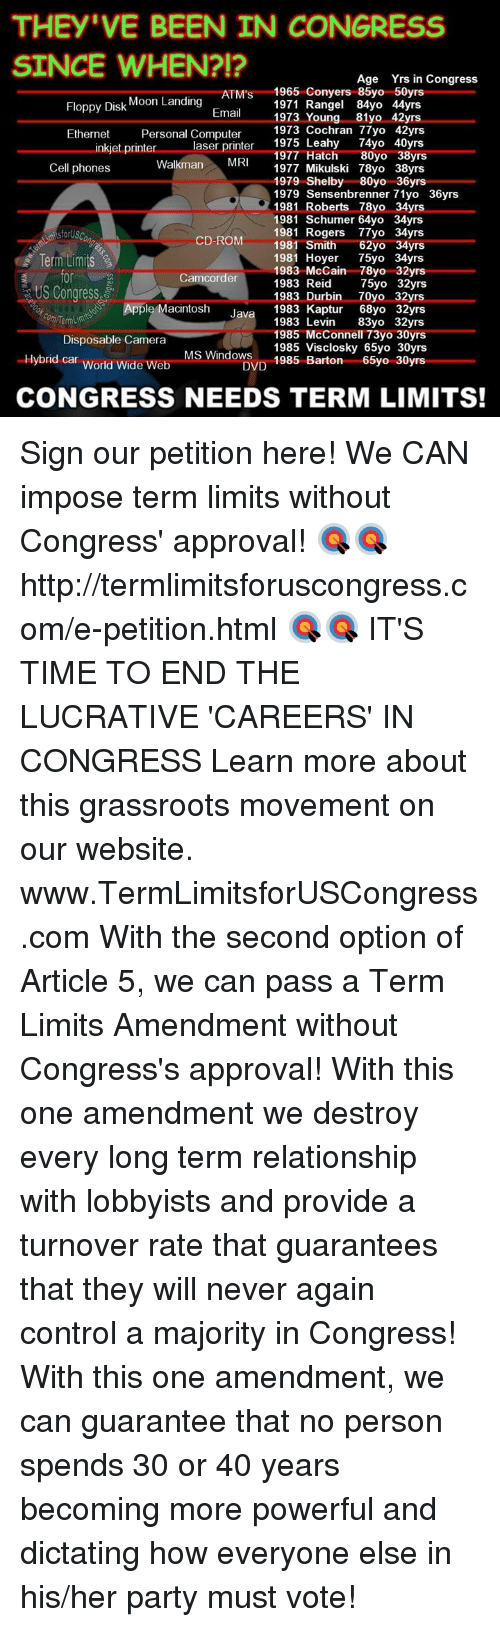 Approvation: THEY VE BEEN IN CONGRESS  SINCE WHEN?!?  Age Yrs in Congress  Floppy Disk  Moon Landing  ATMs 1971 Rangel 84yo 44yrs  1965 Conyers 50yrs  Email  1973 Young  81y  42yrs  Ethernet  Personal Computer  1973 Cochran 77yo 42yrs  inkjet printer  aser printer  1975 Leahy  74yo 40yrs  1977 Hatch  80yo  8yrs  Walkman  MRI  Cell phones  1977 Mikulski 78yo 38yrs  1979 Shelby 80yo 36yrs  1979 Sensenbrenner 71yo 36yrs  1981 Roberts 78yo 34yrs  1981 Schumer 64yo 34yrs  1981 Rogers 77yo 34yrs  CD-ROM  1981 Smith  62yo yrs  34  Term Limits  1981 Hoyer  75yo 34yrs  1983 McCain 78yo 32yrs  Camcorder  1983 Reid  75yo 32yrs  US Congress  1983 Durbin Oyo 32yrs.  Apple Macintosh  Java  1983 Kaptur  68yo 32yrs  1983 Levin  83yo 32yrs  1985 McConnell 73yo 30yrs  Disposable Camera  1985 Visclosky 65yo 30yrs  MS Windows  DVD  1985 Barton  65yo 30yrs  Hybrid car World Wide Web  CONGRESS NEEDS TERM LIMITS! Sign our petition here! We CAN impose term limits without Congress' approval! 🎯🎯http://termlimitsforuscongress.com/e-petition.html 🎯🎯  IT'S TIME TO END THE LUCRATIVE 'CAREERS' IN CONGRESS  Learn more about this grassroots movement on our website. www.TermLimitsforUSCongress.com  With the second option of Article 5, we can pass a Term Limits Amendment without Congress's approval! With this one amendment we destroy every long term relationship with lobbyists and provide a turnover rate that guarantees that they will never again control a majority in Congress! With this one amendment, we can guarantee that no person spends 30 or 40 years becoming more powerful and dictating how everyone else in his/her party must vote!